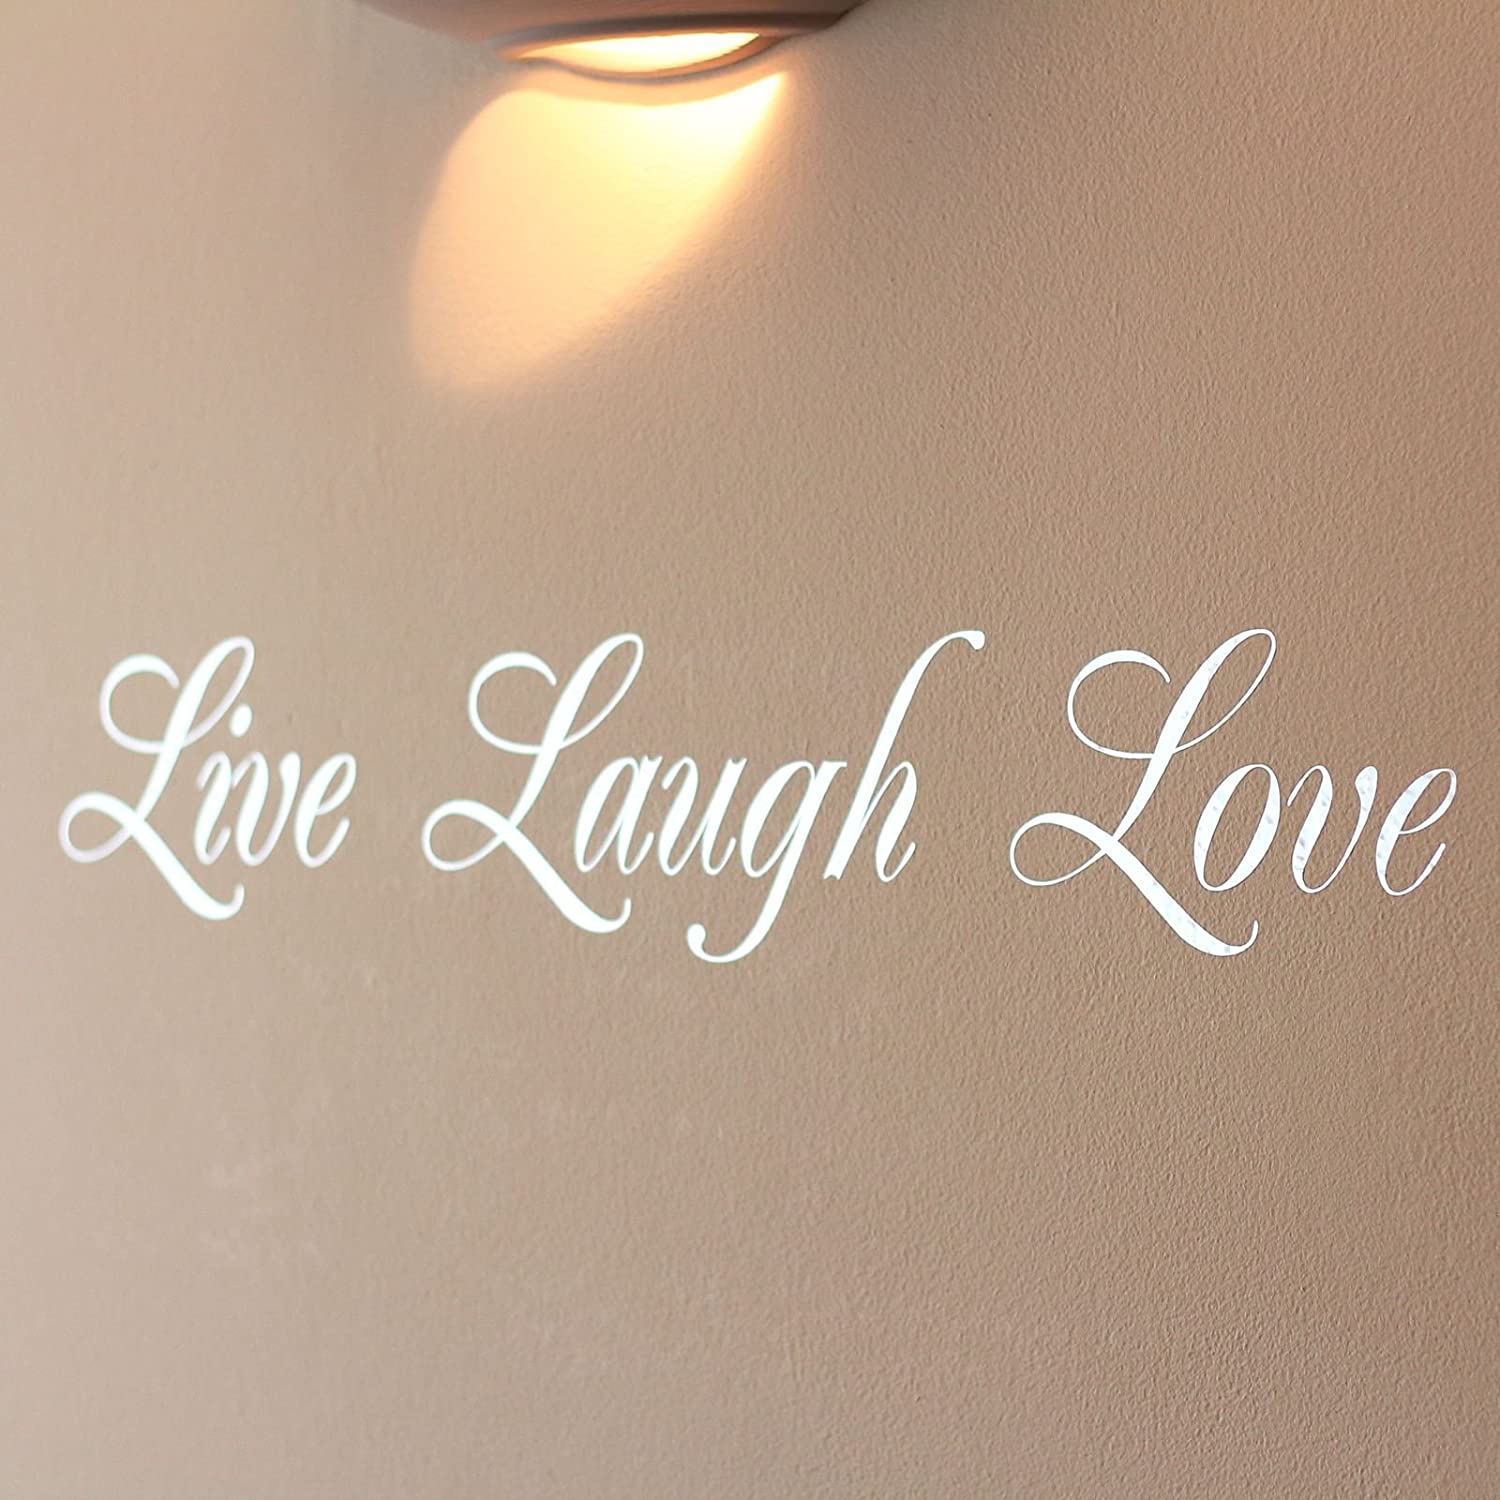 Mirror Silver Live Laugh Love Wall Art Sticker: Amazon.co.uk: Kitchen U0026 Home